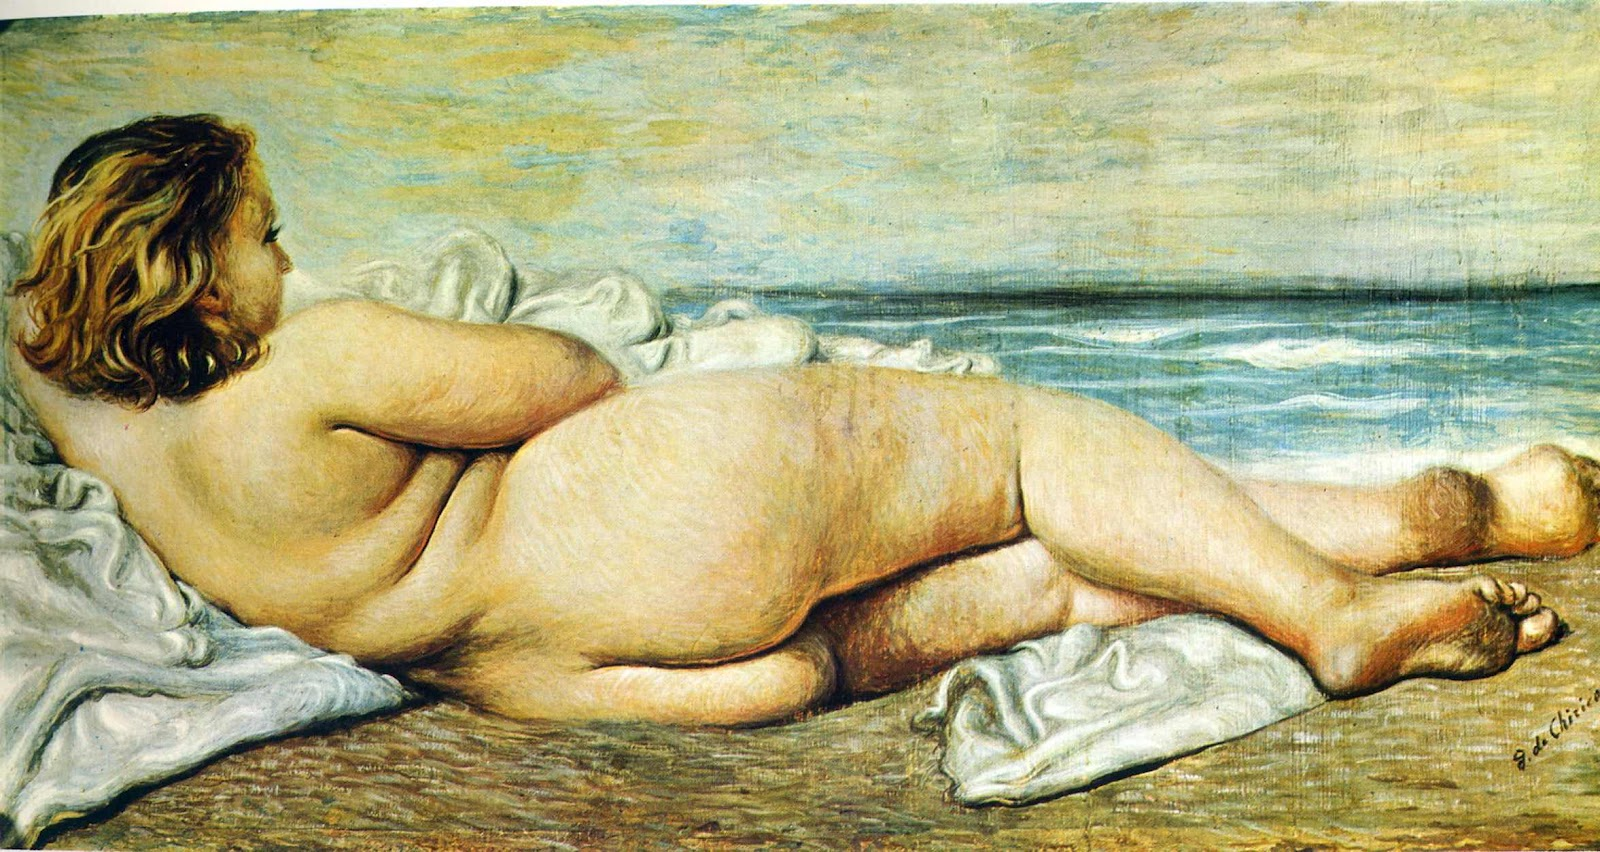 Nude Woman On The Beach, Giorgio de Chirico, 1932